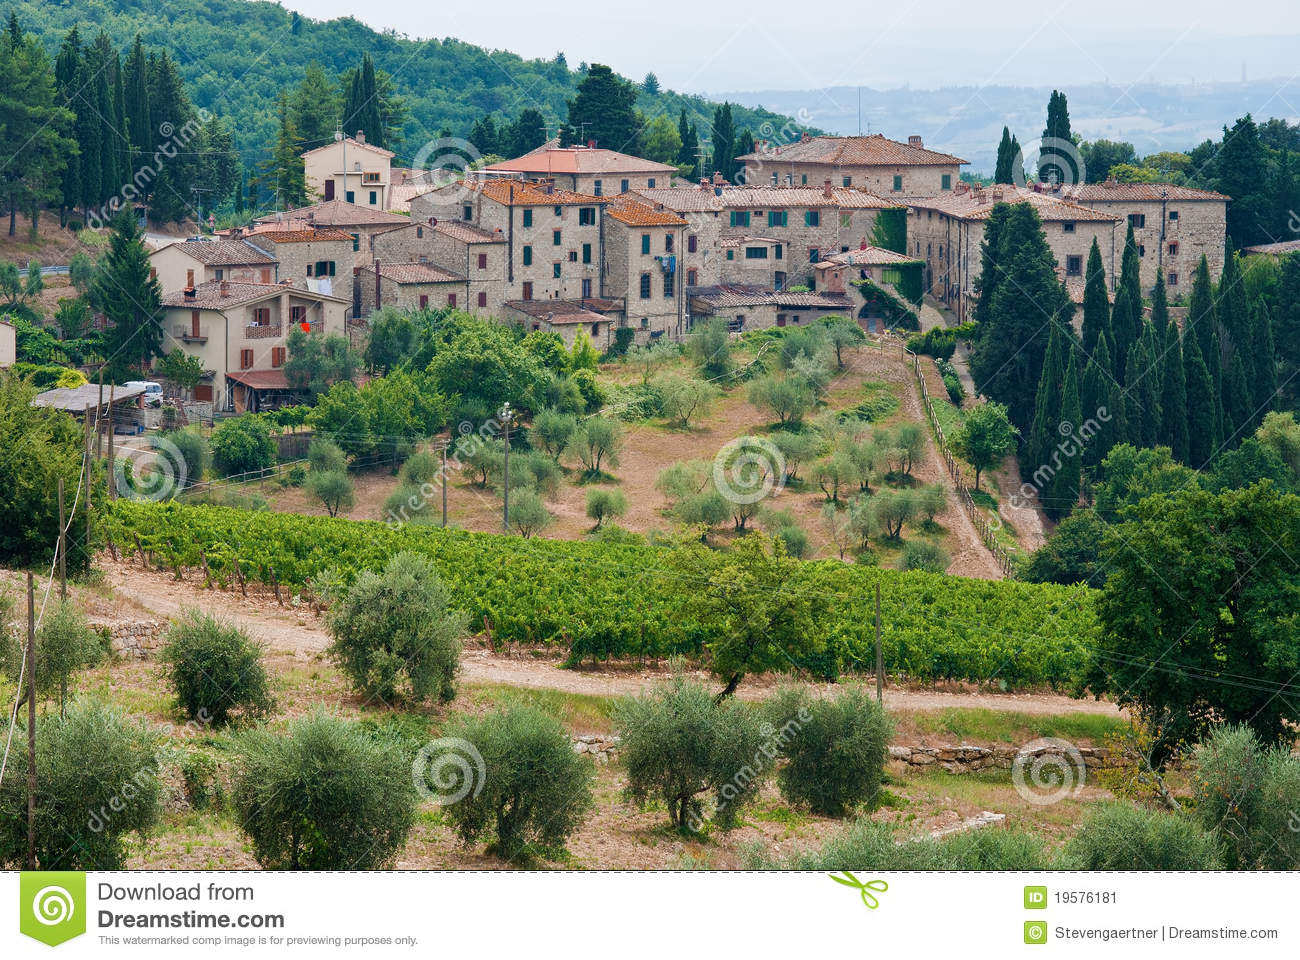 Vernaccia further Royalty Free Stock Photography Farmhouse Vineyards Chianti Countryside Image27447017 moreover Vineyard Wallpaper Download as well 131026670381978340 in addition Tuscany 1. on tuscan vineyards at sunset